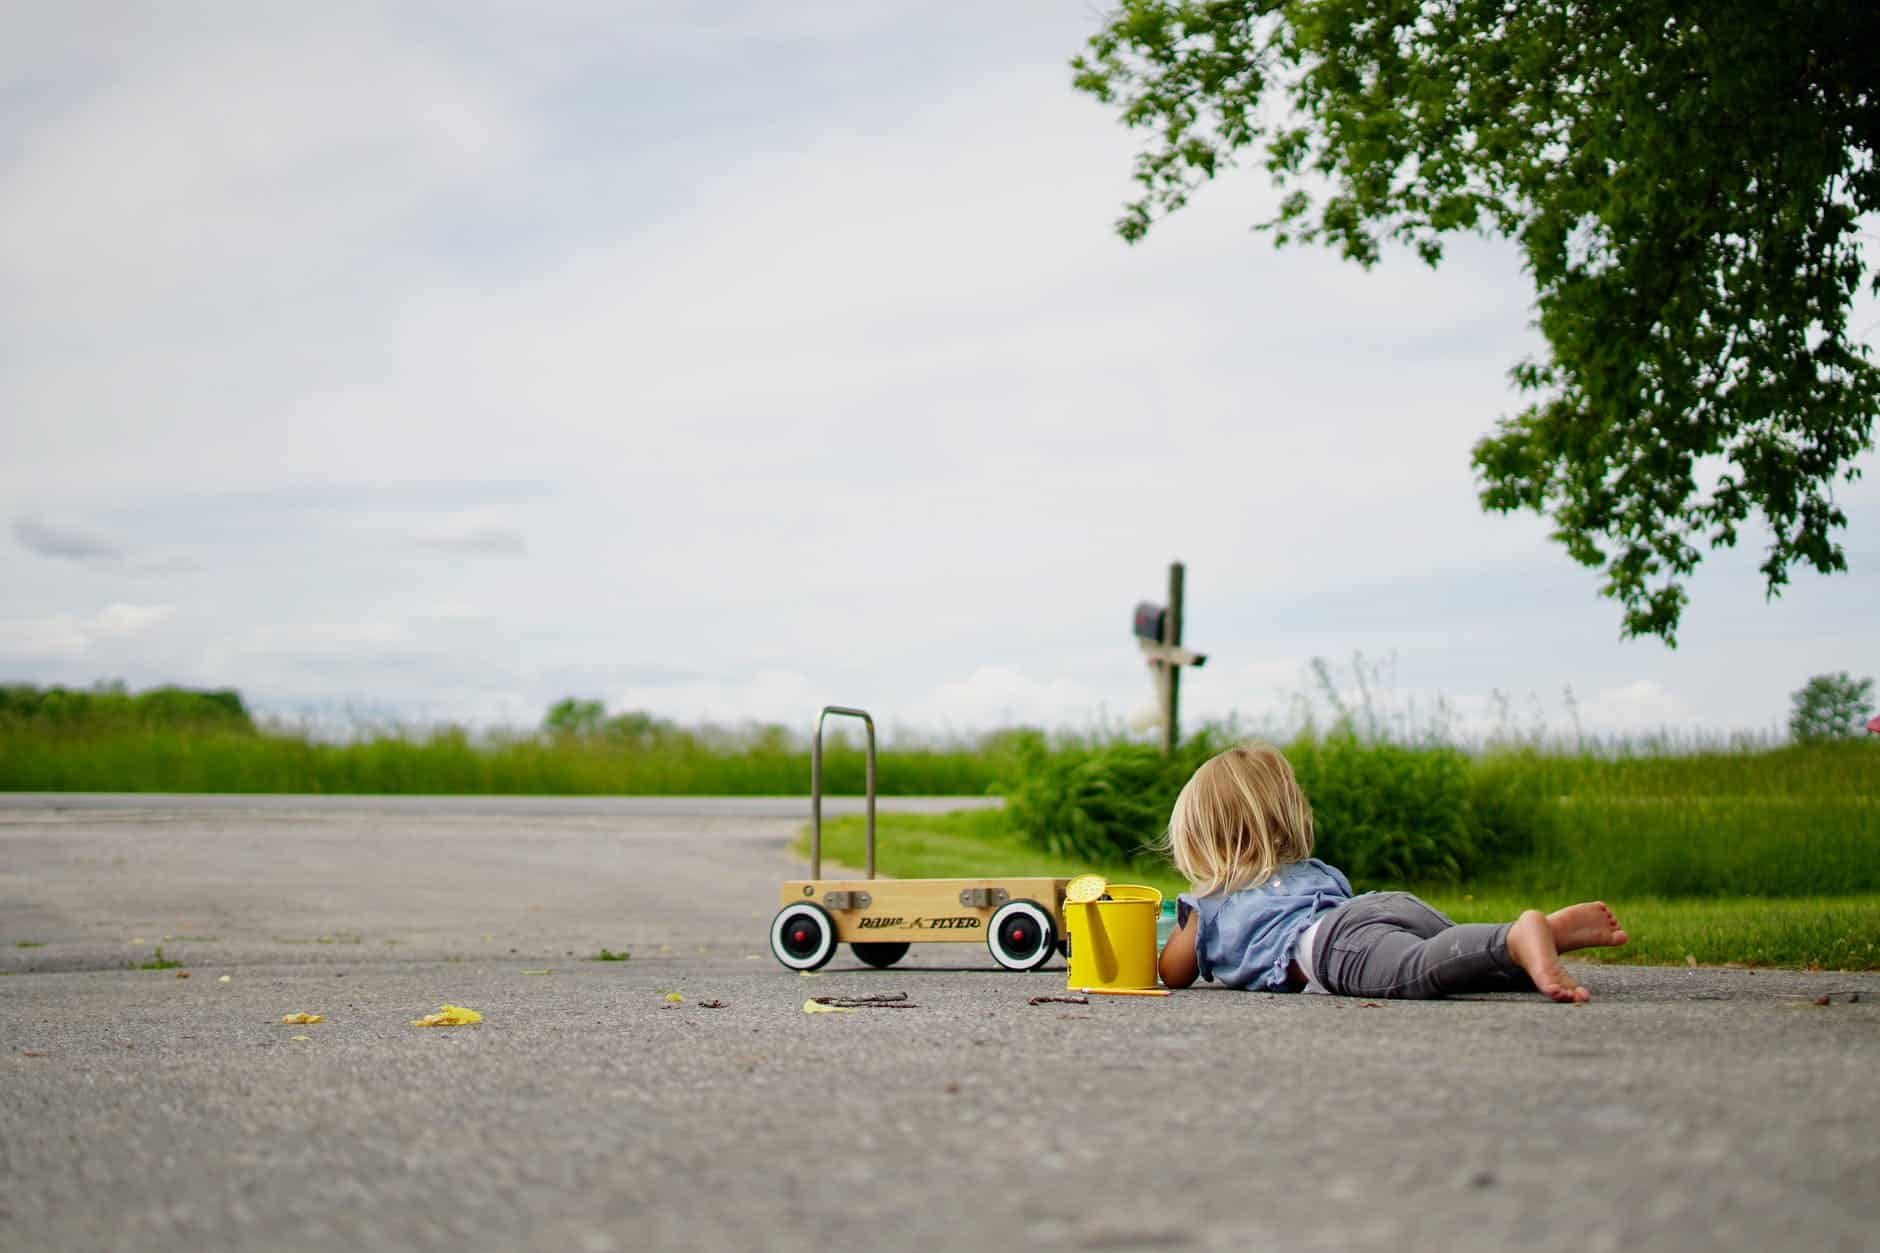 girl lying on road in front of cart -  encourage your child to explore